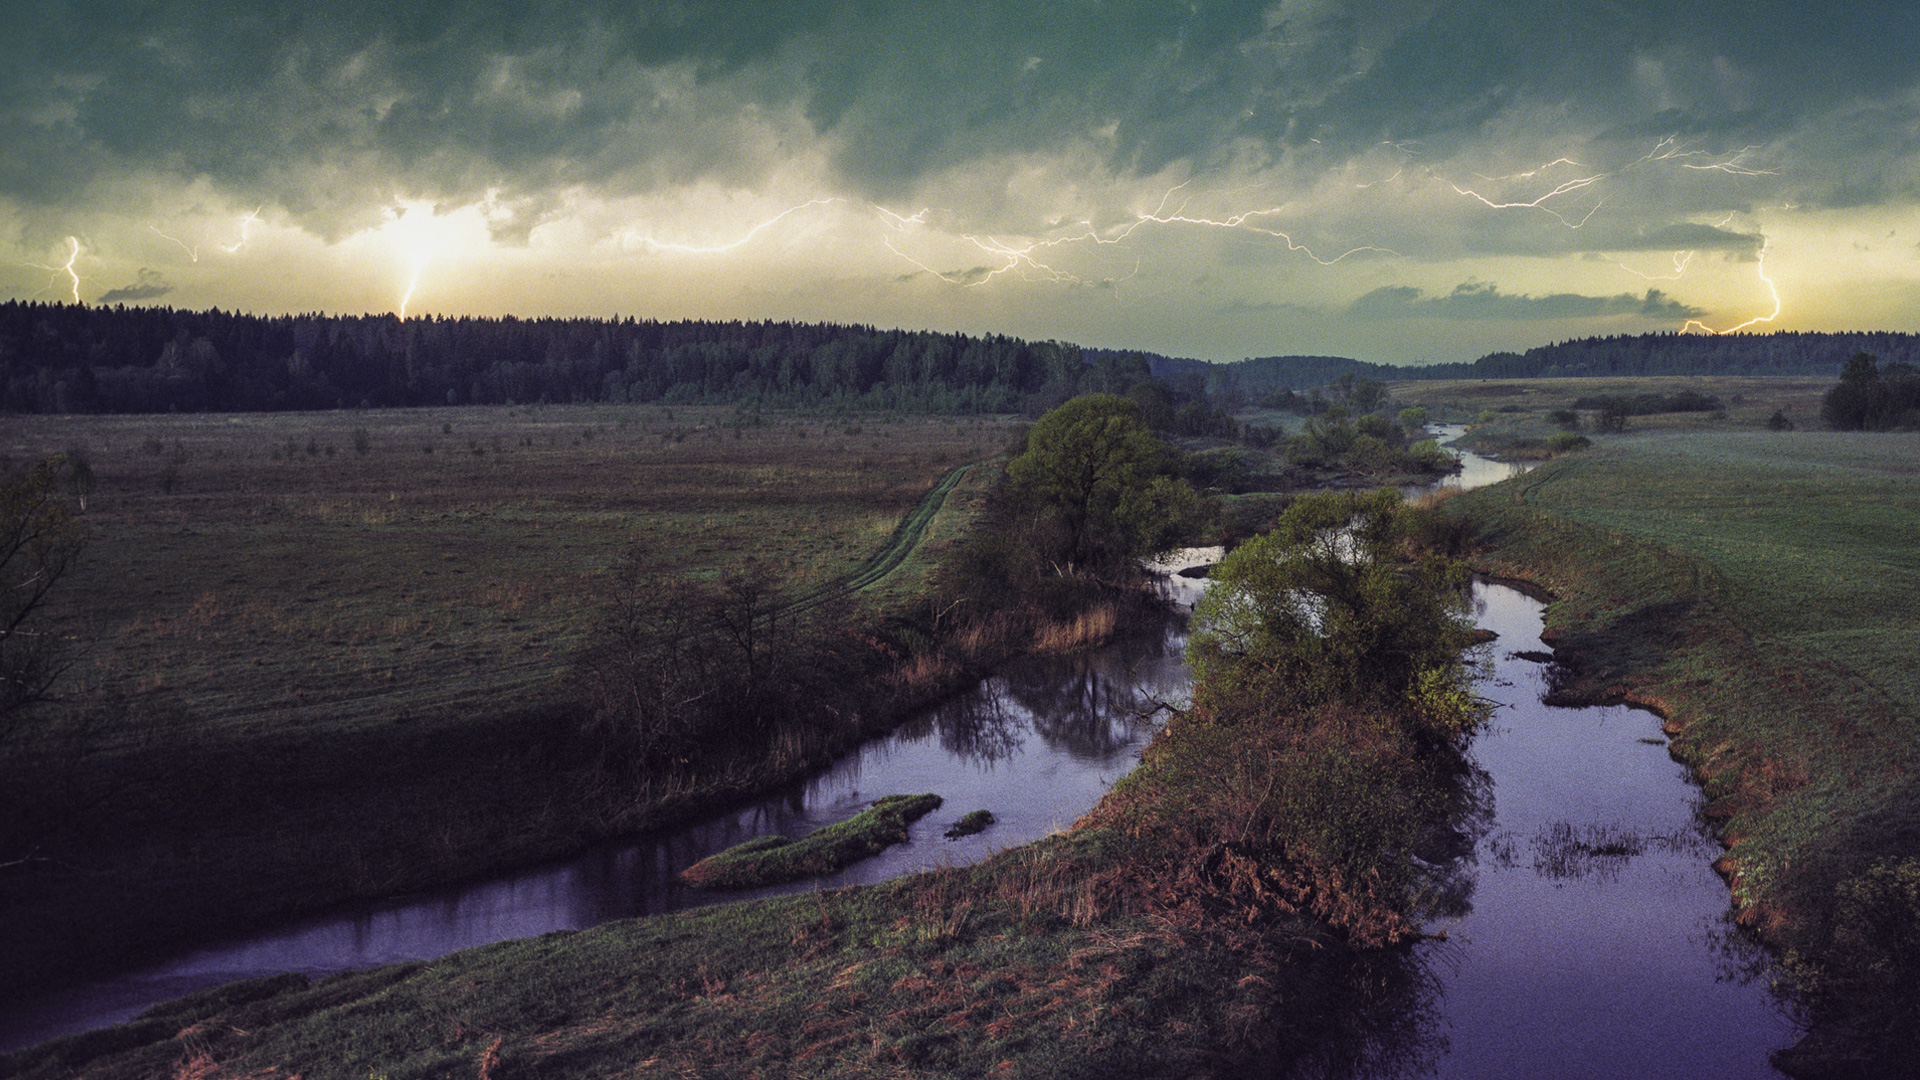 A visual diary of a Russian river, providing direction in moments of doubt